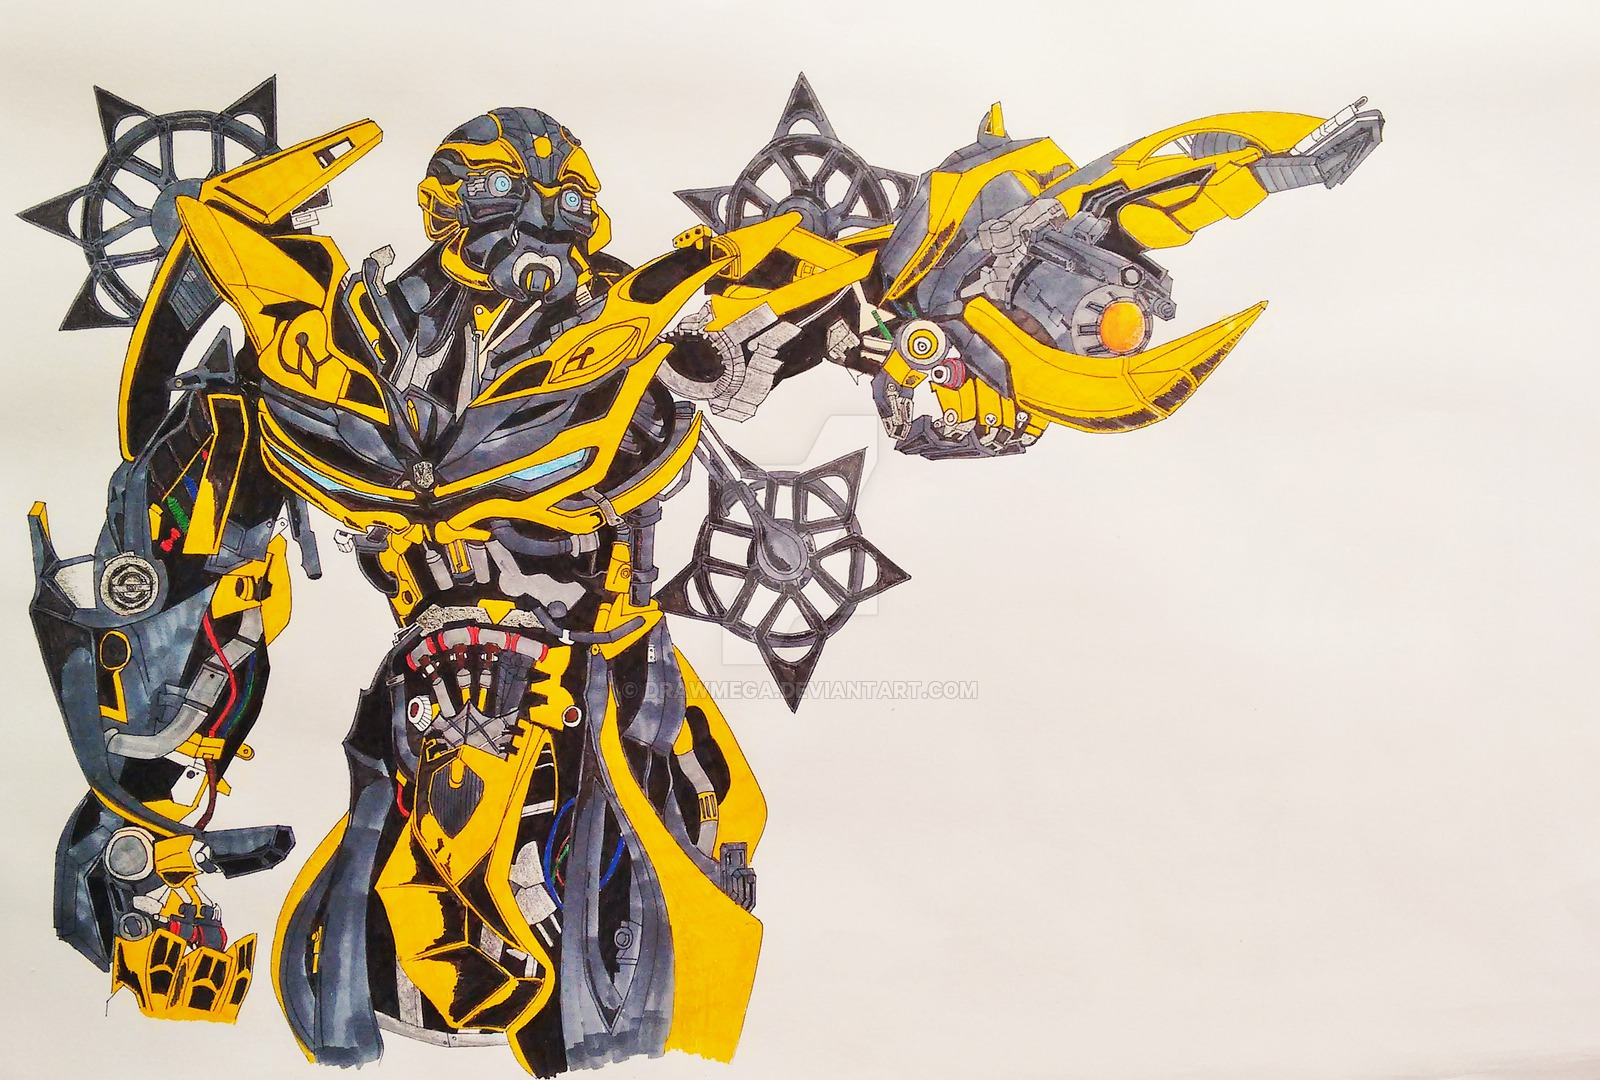 Drawn bumblebee transformers 4 bumblebee By DrawMEGA of transformers Bumblebee